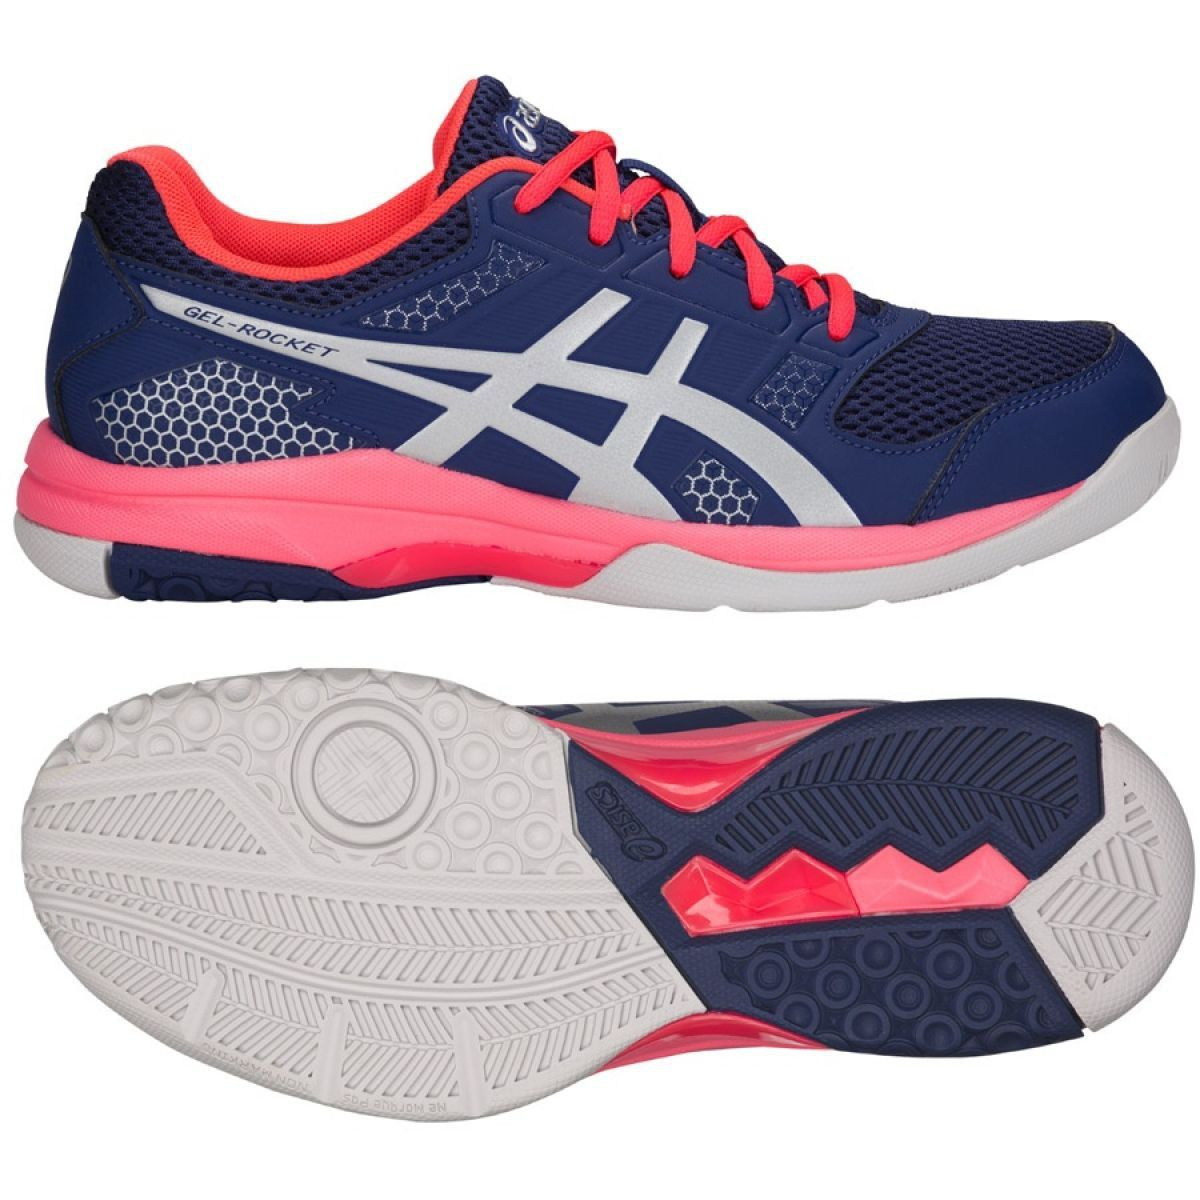 Volleyball Shoes Asics Gel Rocket 8 W B756y 400 Navy Navy Volleyball Shoes Womens Athletic Shoes Asics